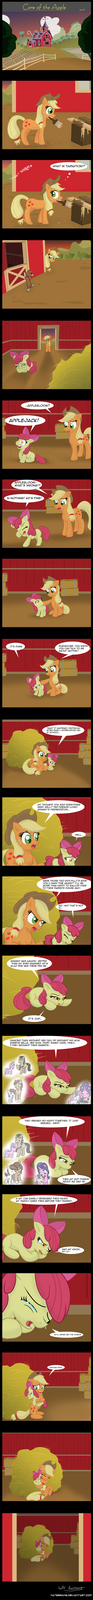 Core of the Apple -Part 1